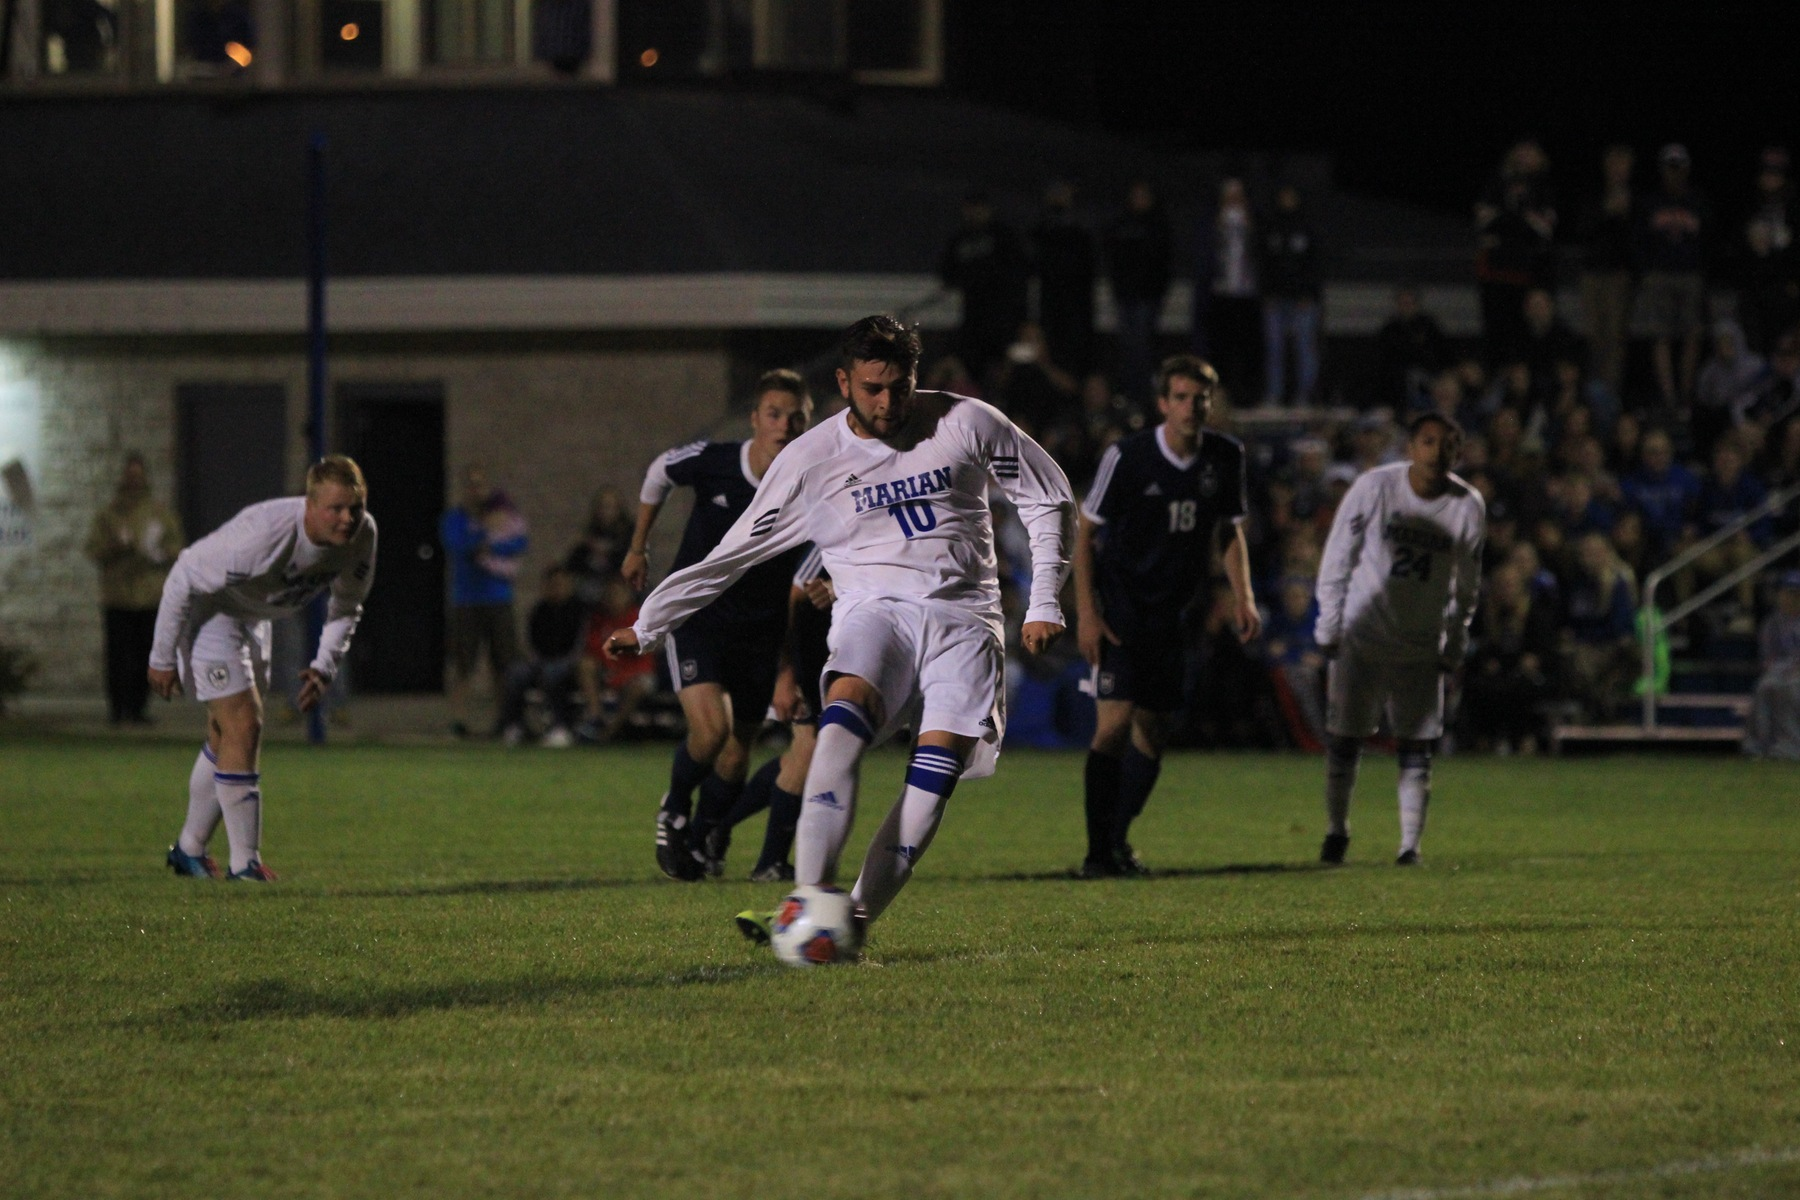 Alonso Fragoso shoots a penalty kick.